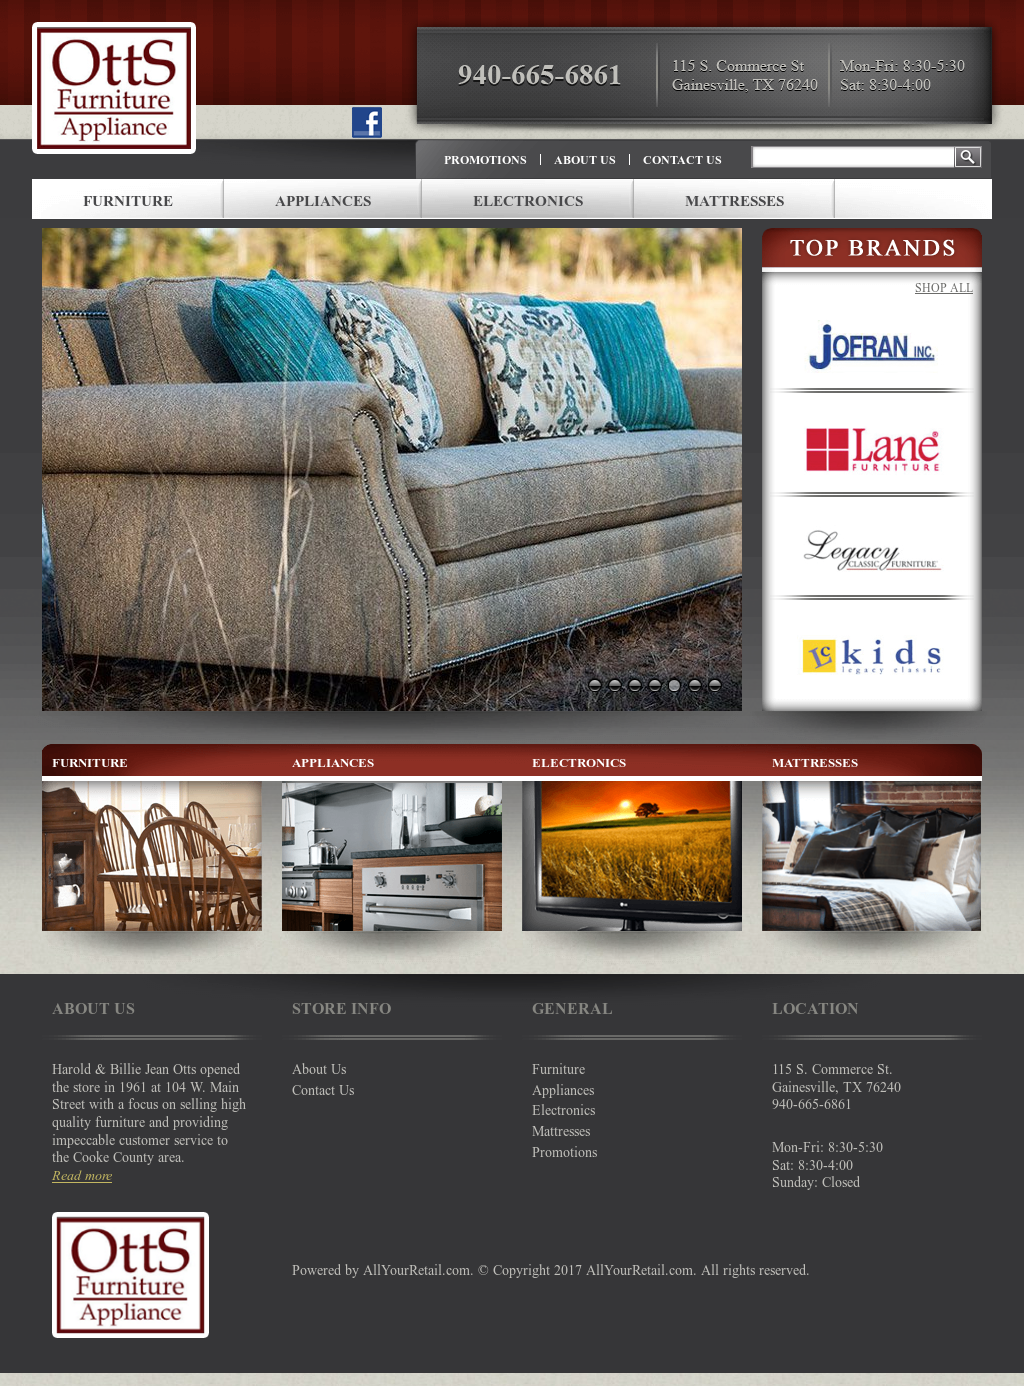 Bon Otts Furniture U0026 Appliance Website History